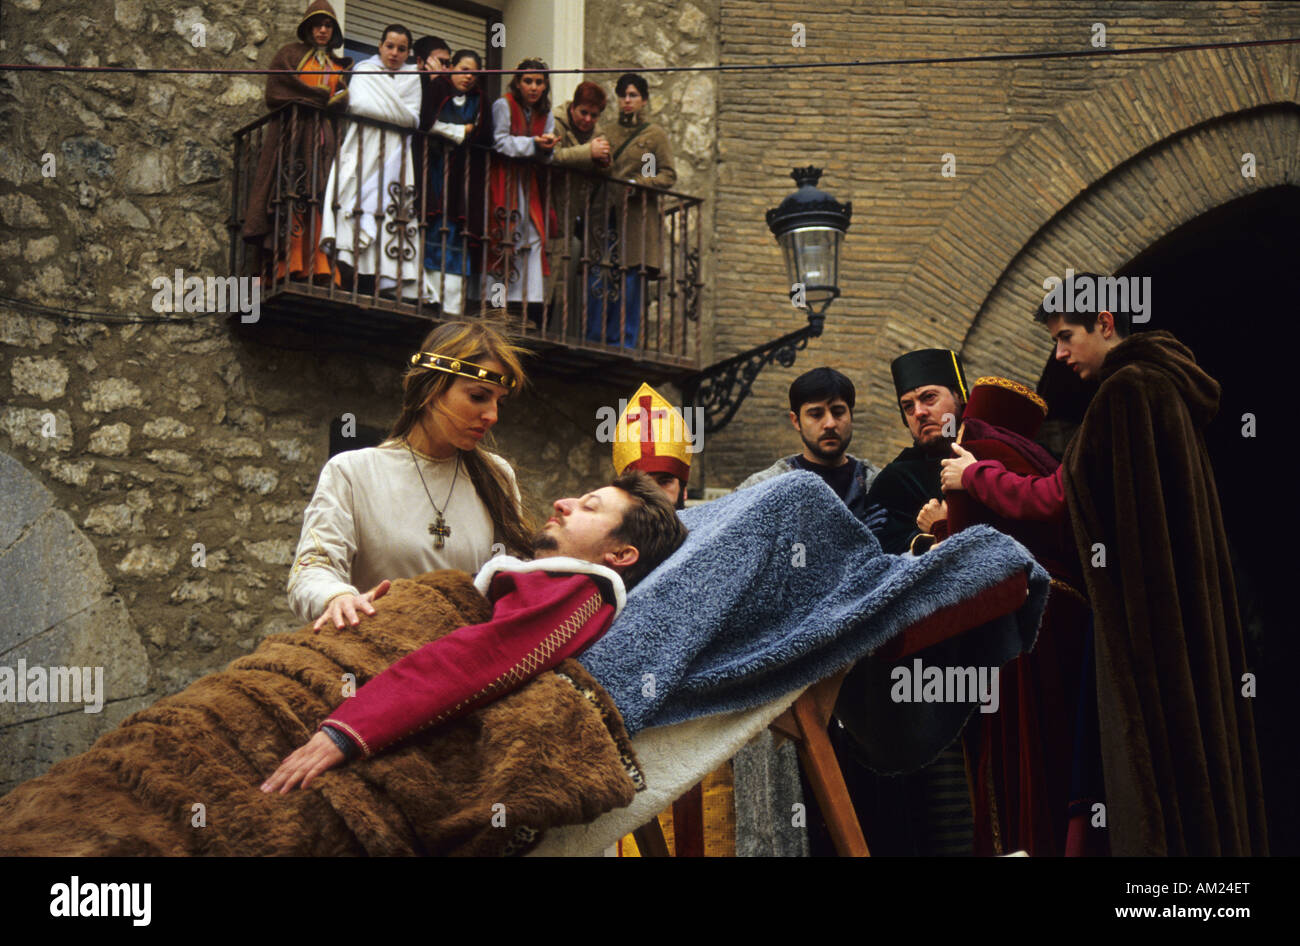 Legend of Teruel lovers MIDDLE AGES FESTIVAL in TERUEL Spain Stock Photo